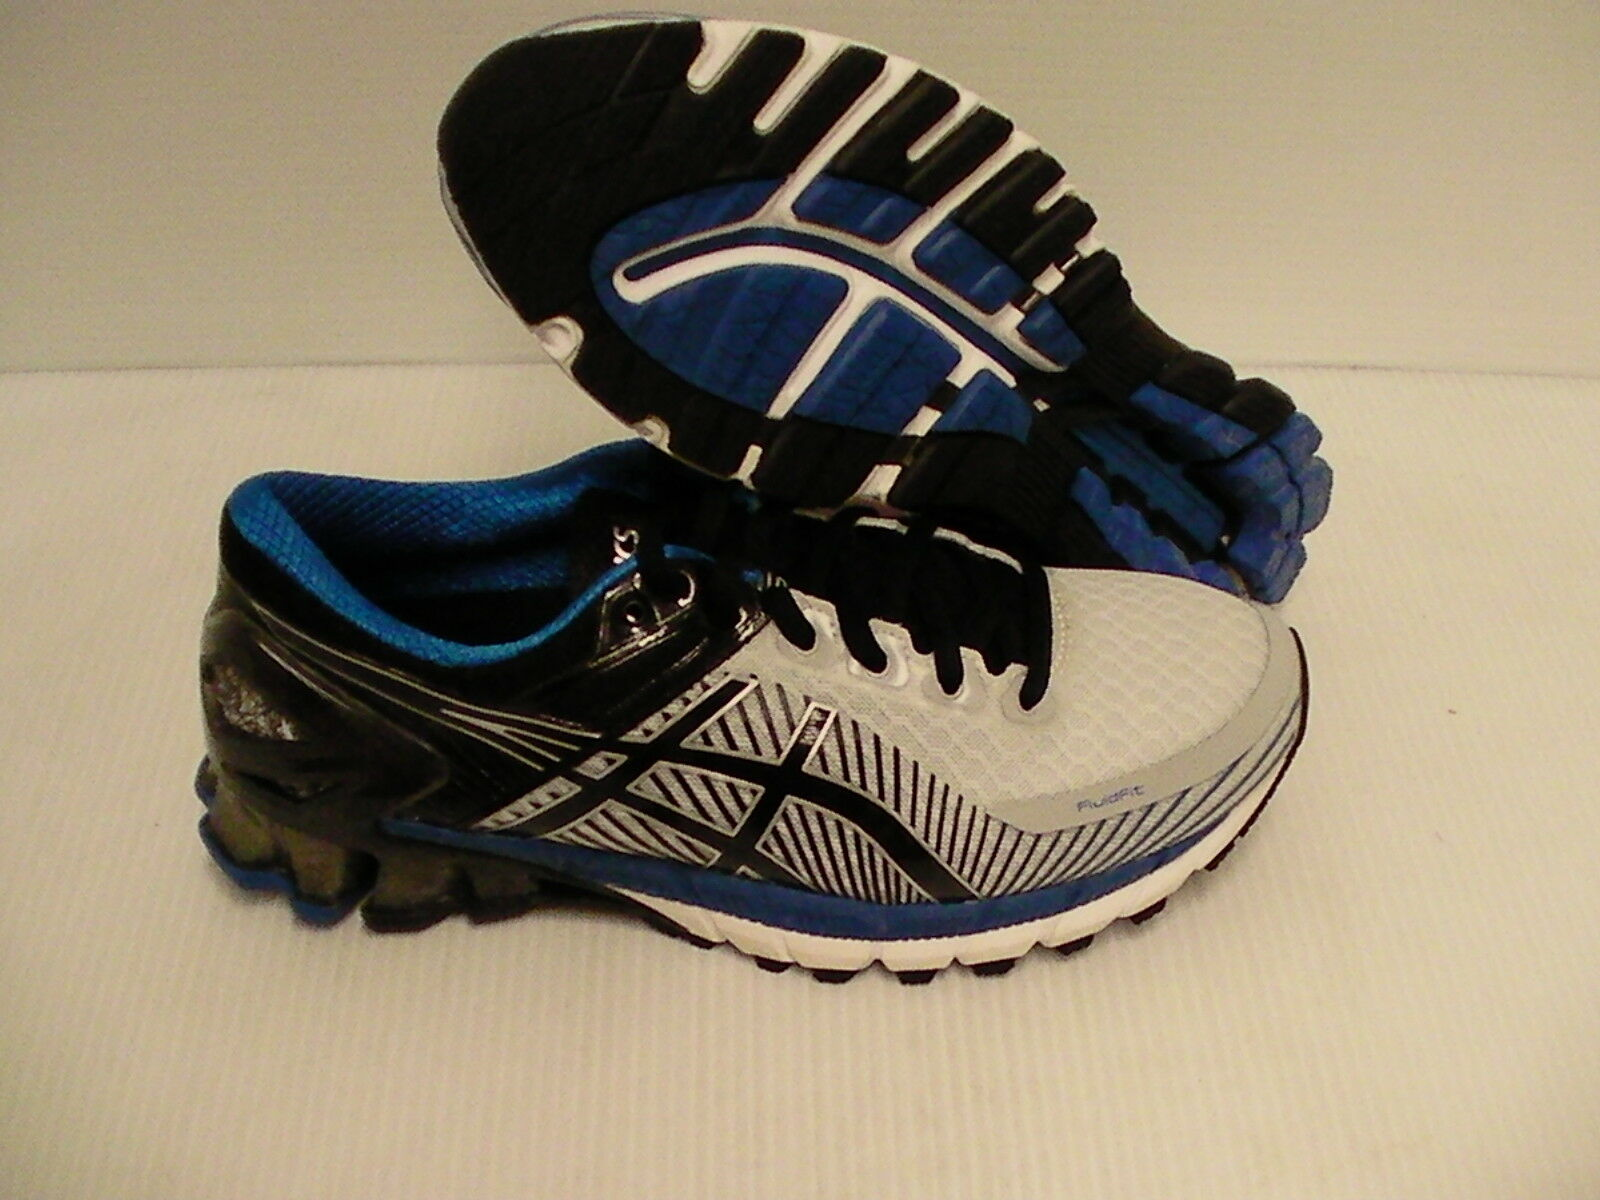 ac53d011386 Mens ASICS Running Shoes GEL Kinsei 6 Silver Black Blue Size 7 US ...